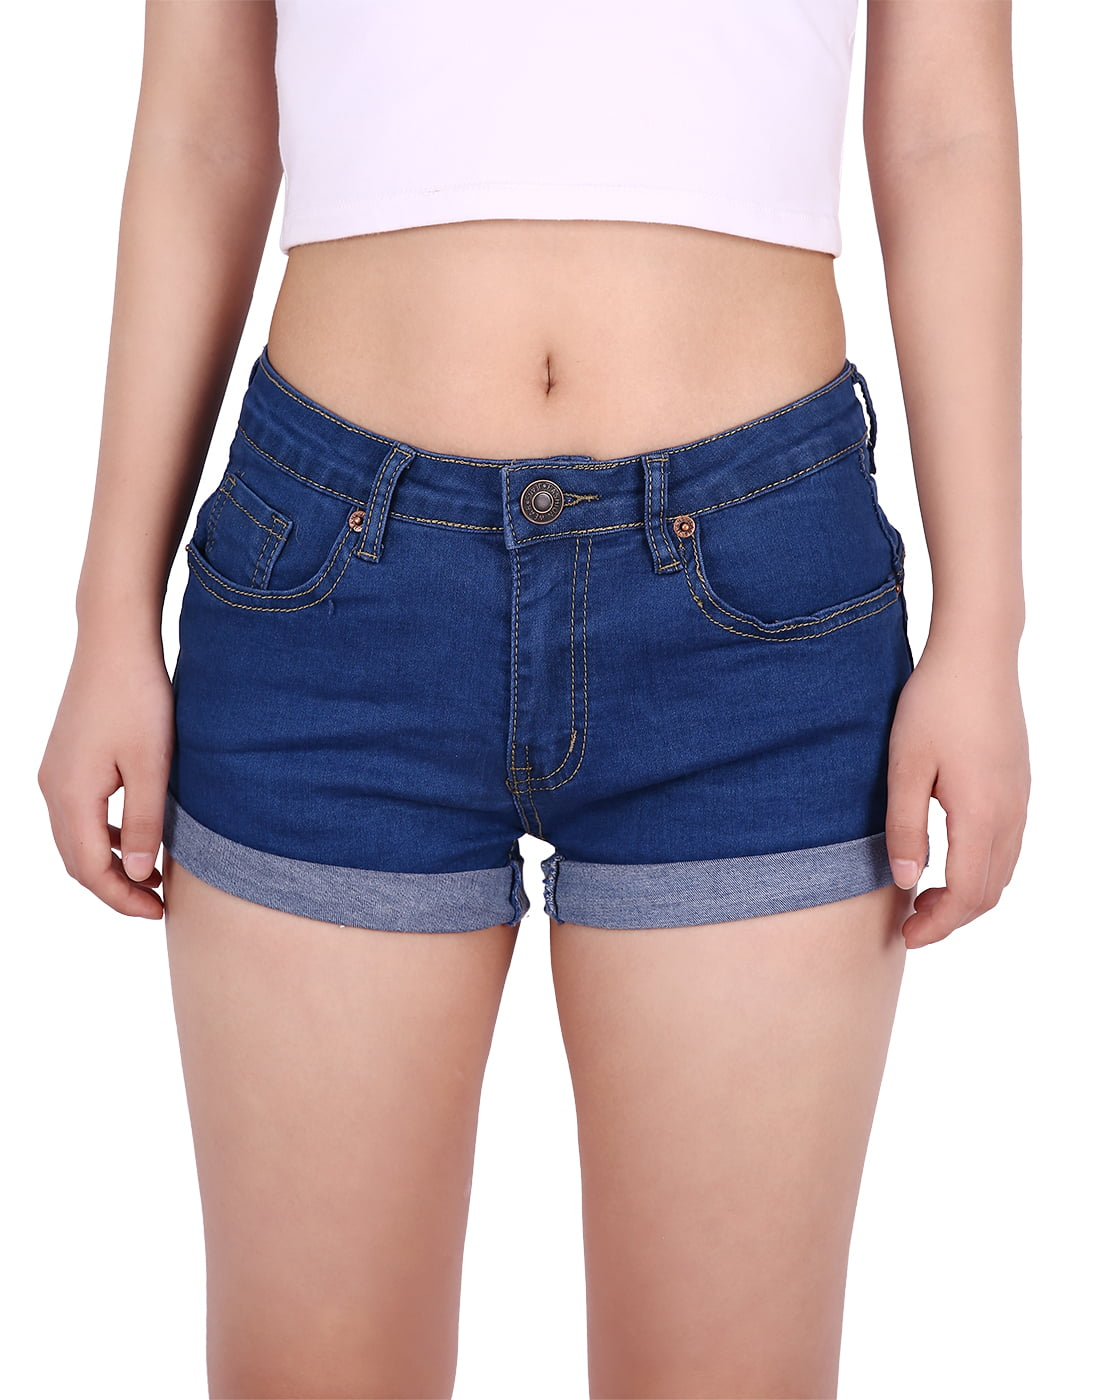 jean shorts for womens